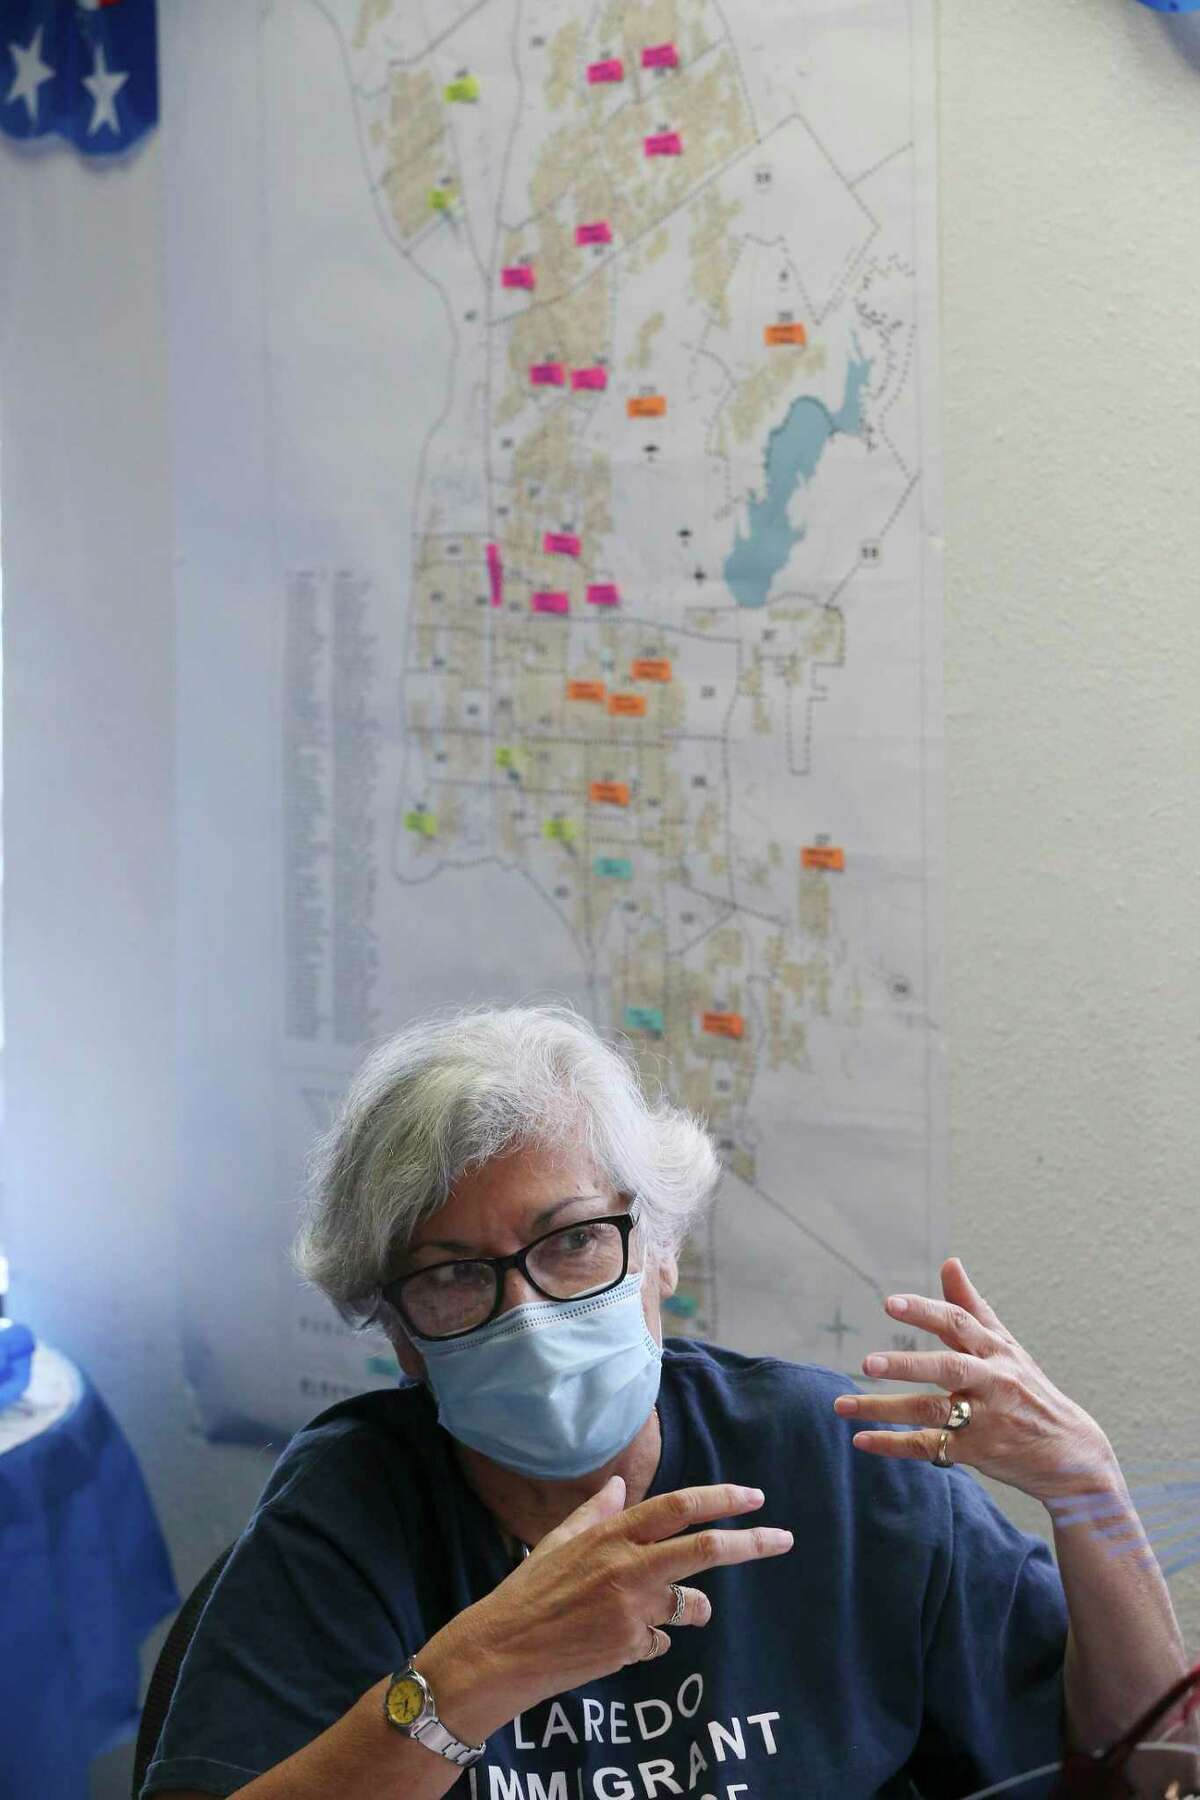 Ana Saenz, Secretary of the Webb County Democratic Party, talks in front of a map of polling precincts in the Laredo area.